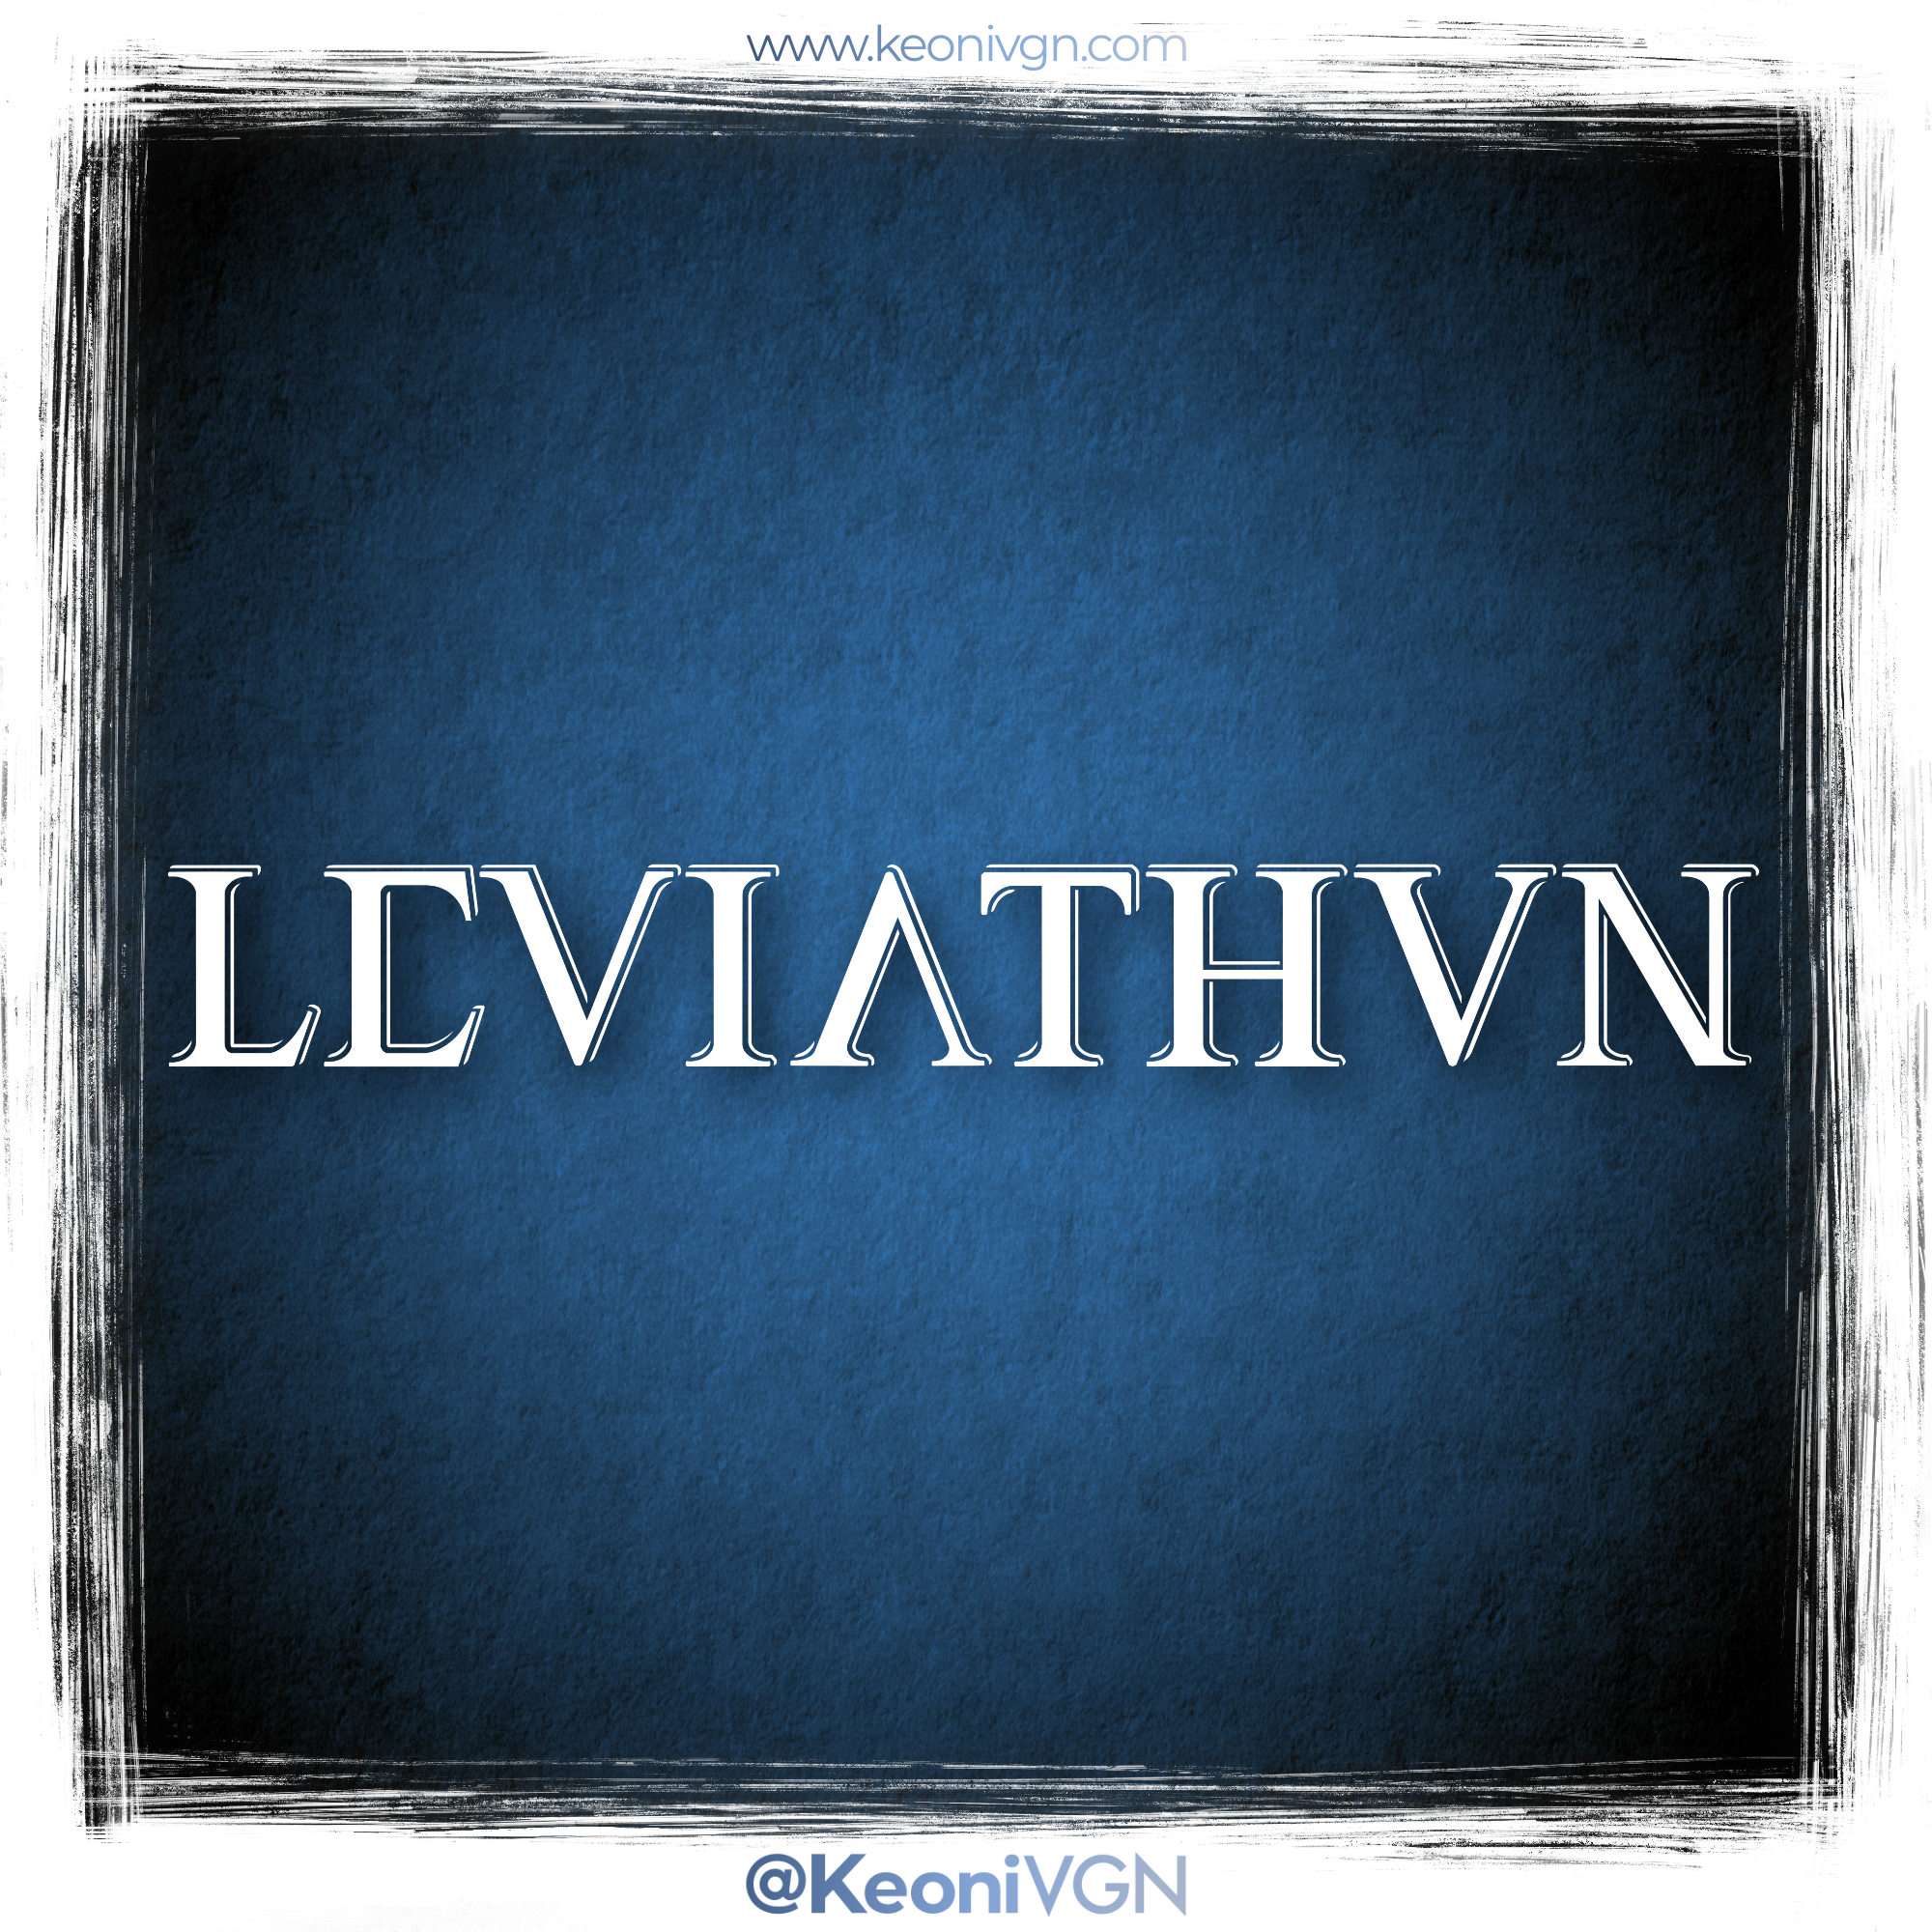 proyecto LEVIATHVN BAND